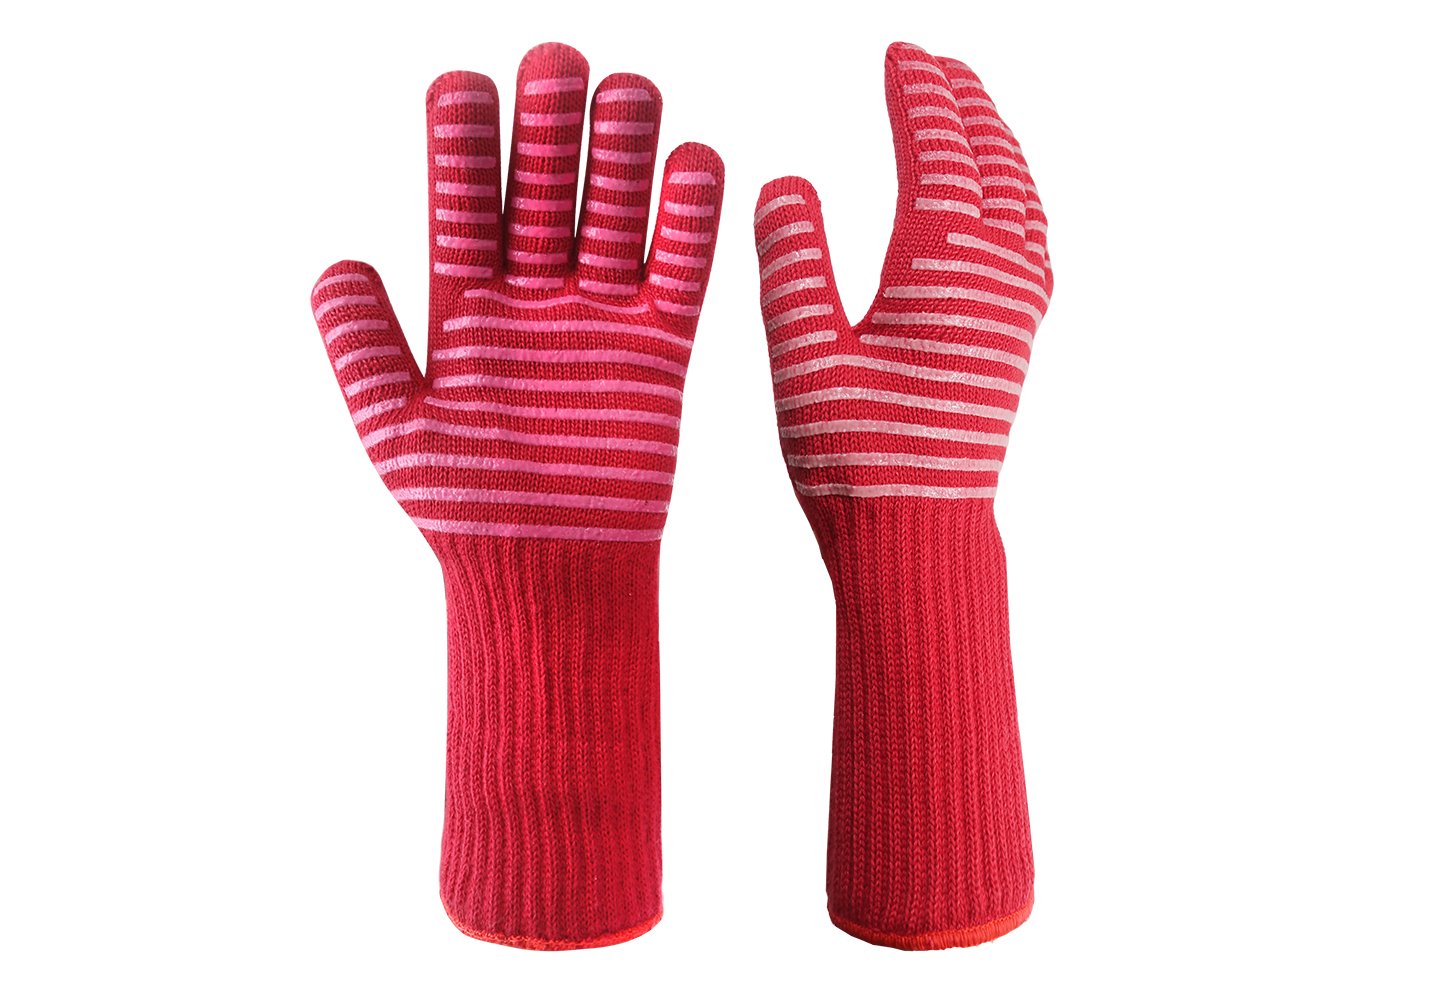 Cooking Gloves in The Kitchen/HRG-004